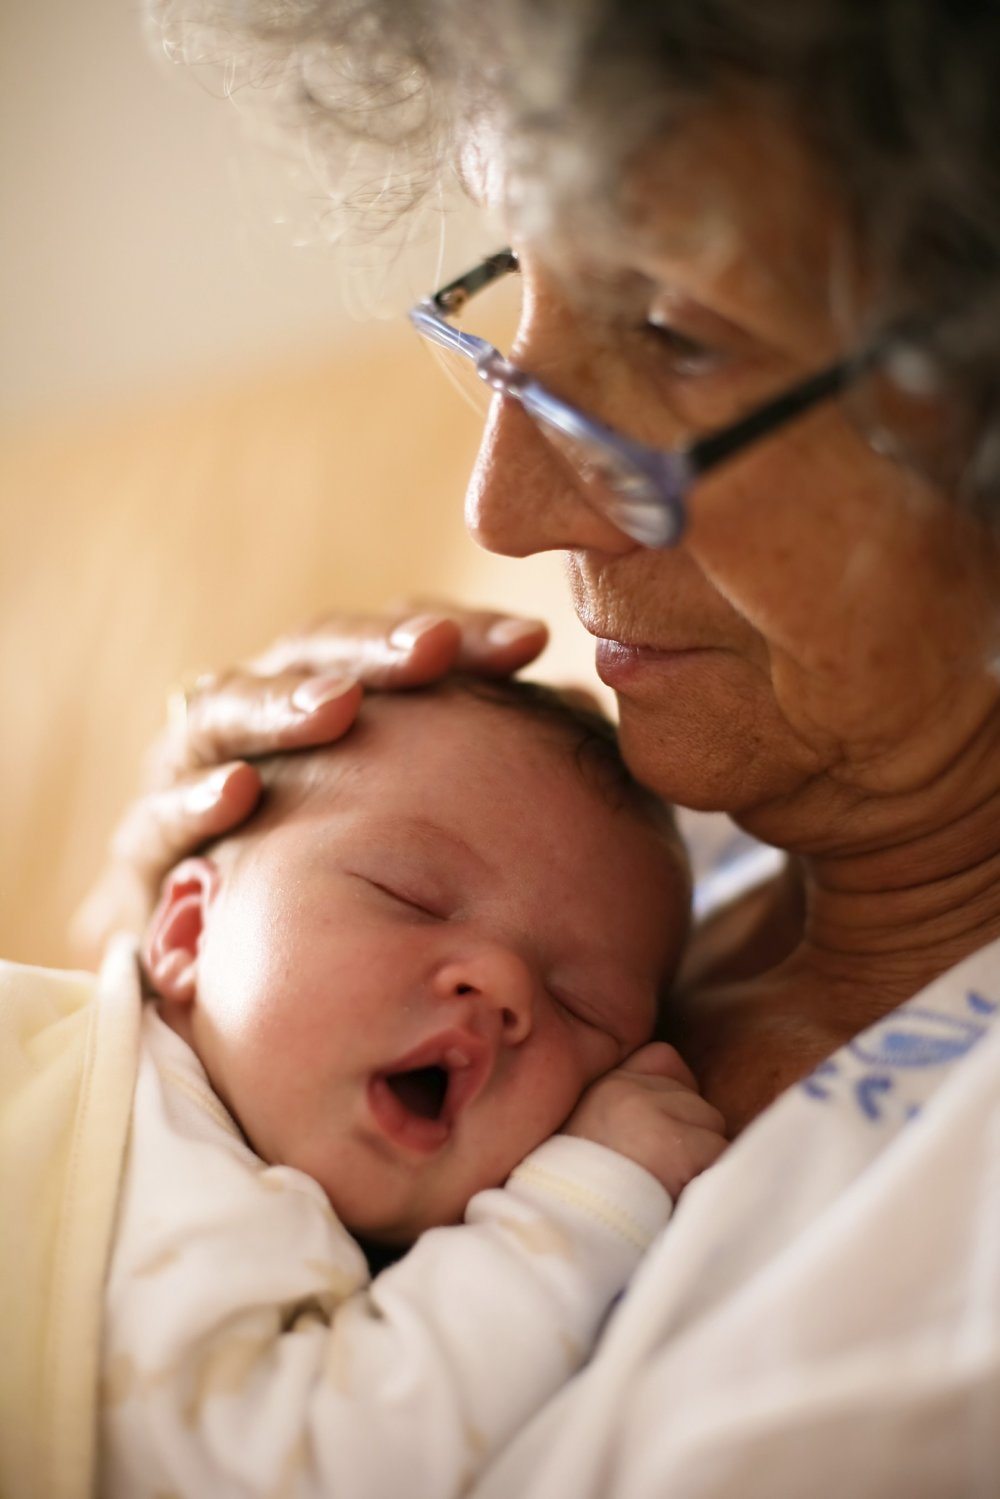 grandmother with baby.jpg